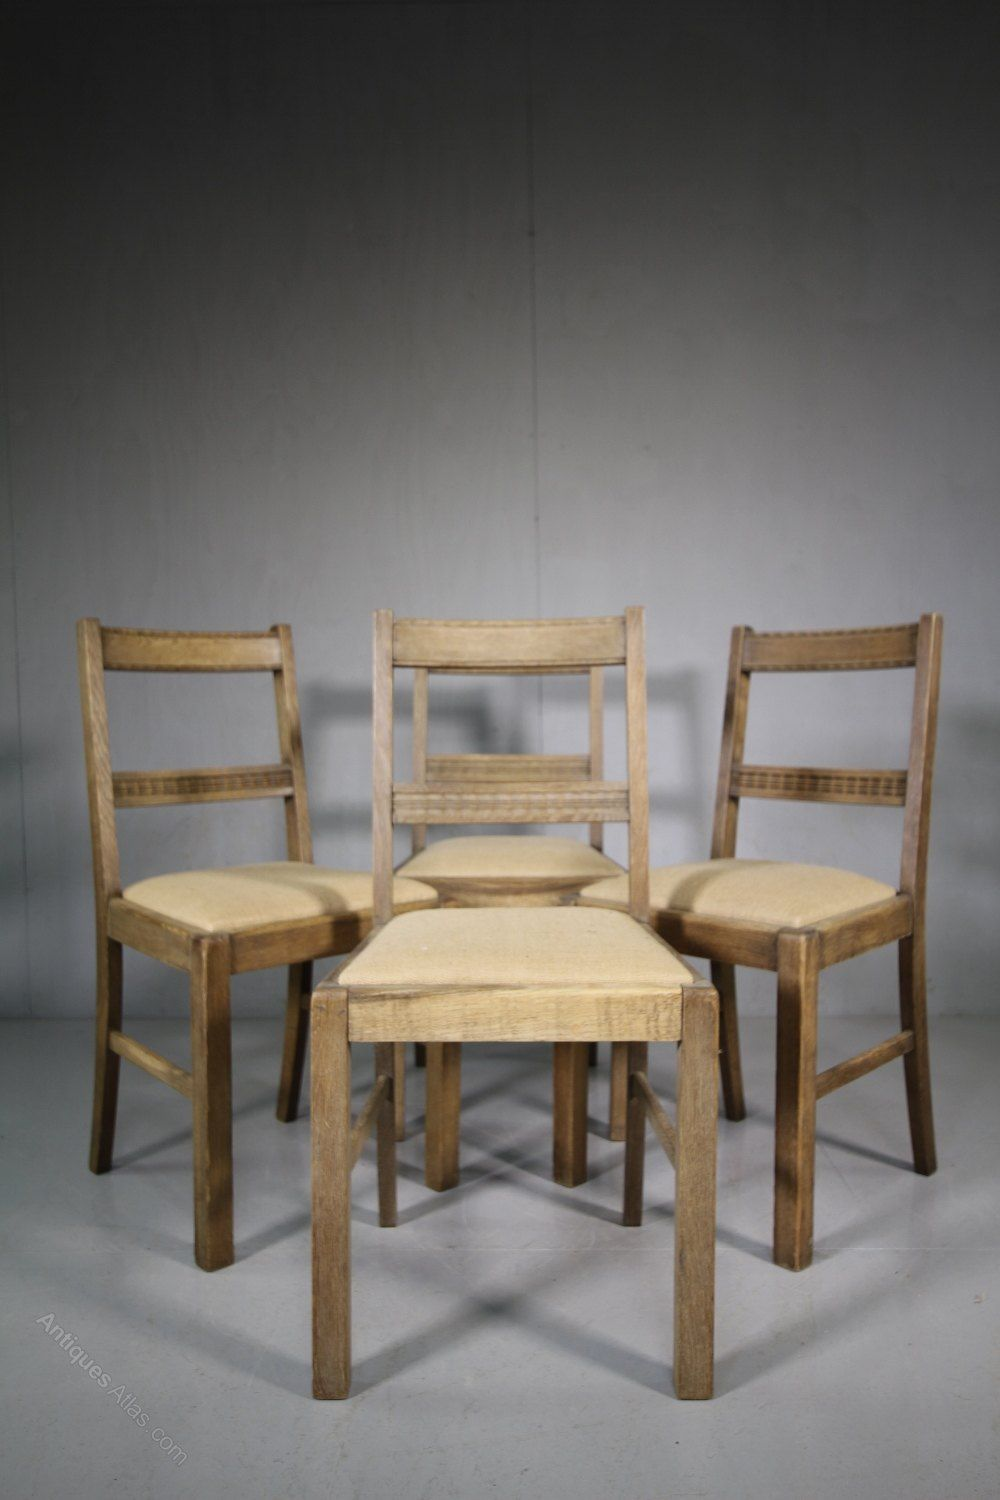 Dining Room Chairs Heals set of four 1920's oak dining chairsheals of london - antiques